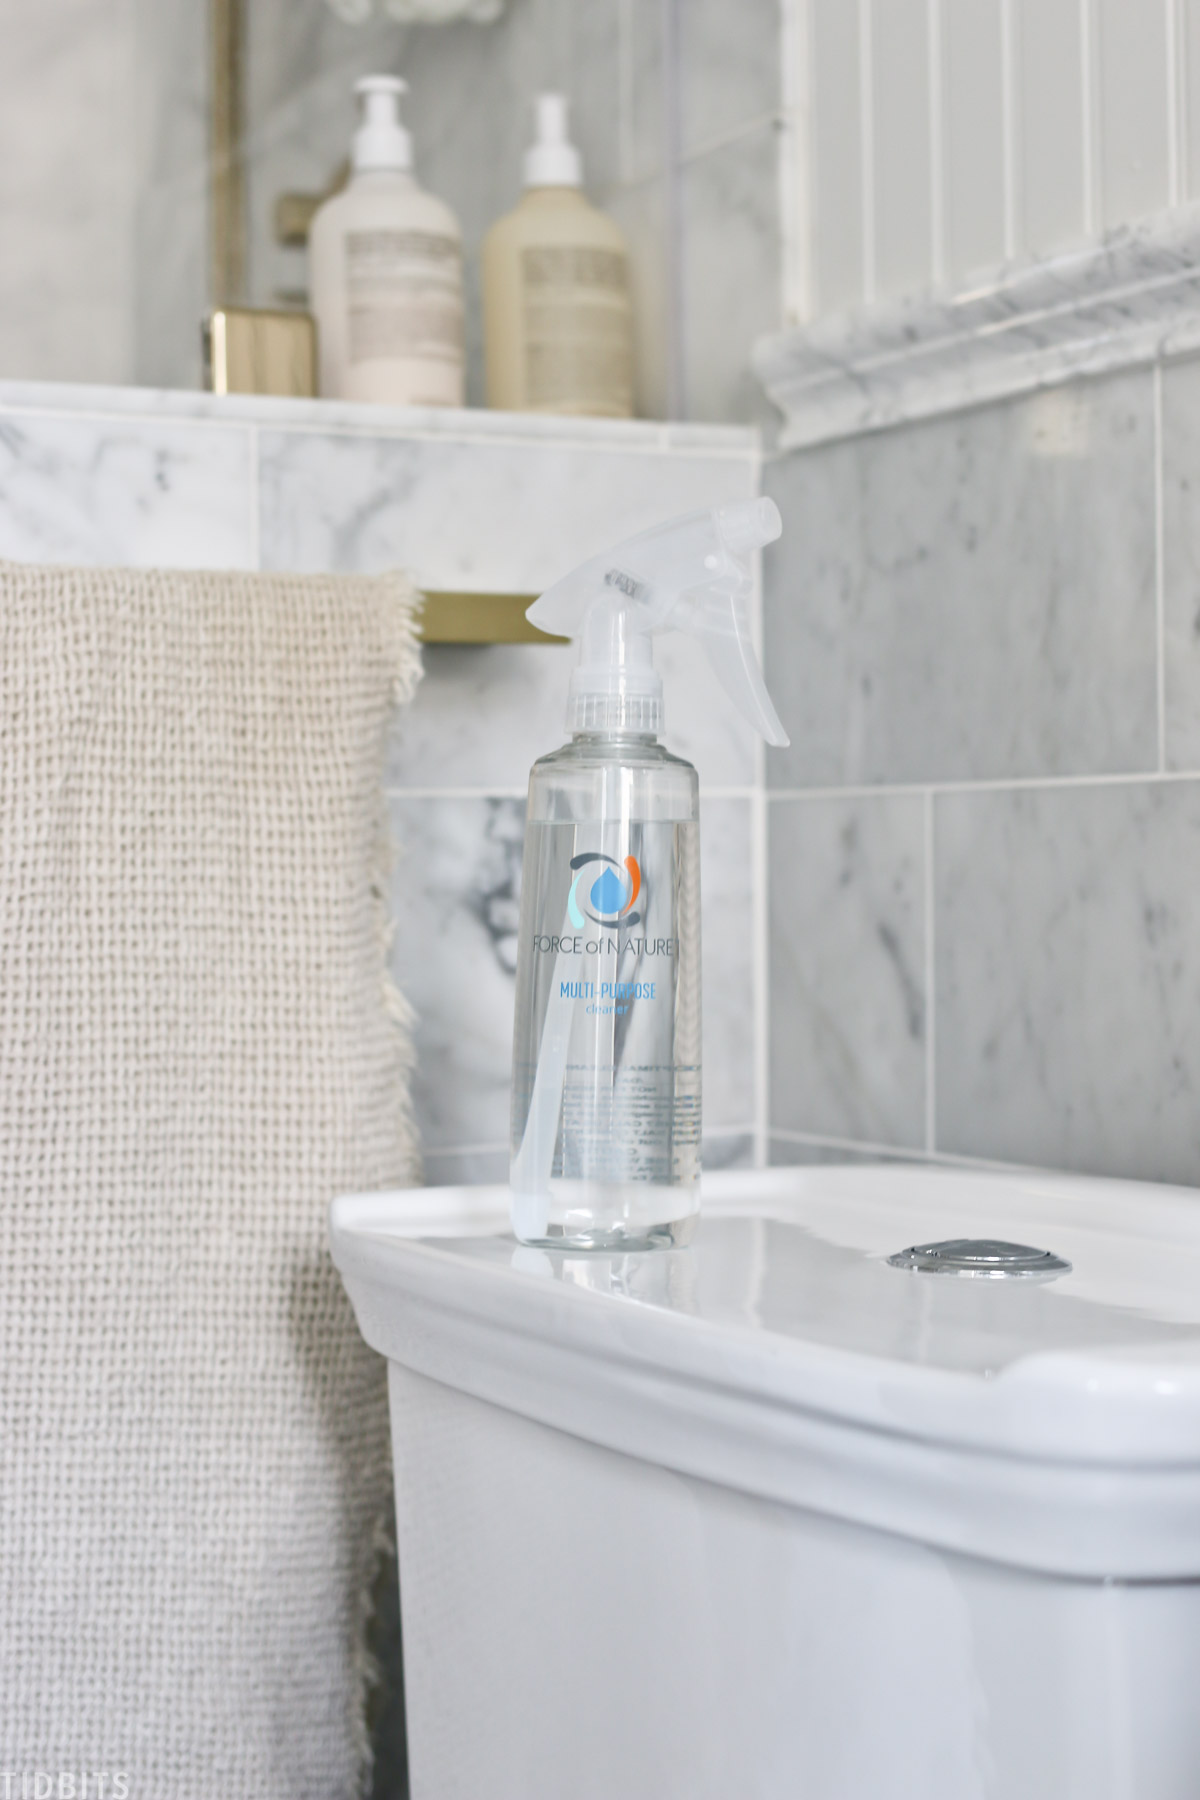 Force of Nature spray bottle that's filled with disinfectant spray and placed on top of a toilet